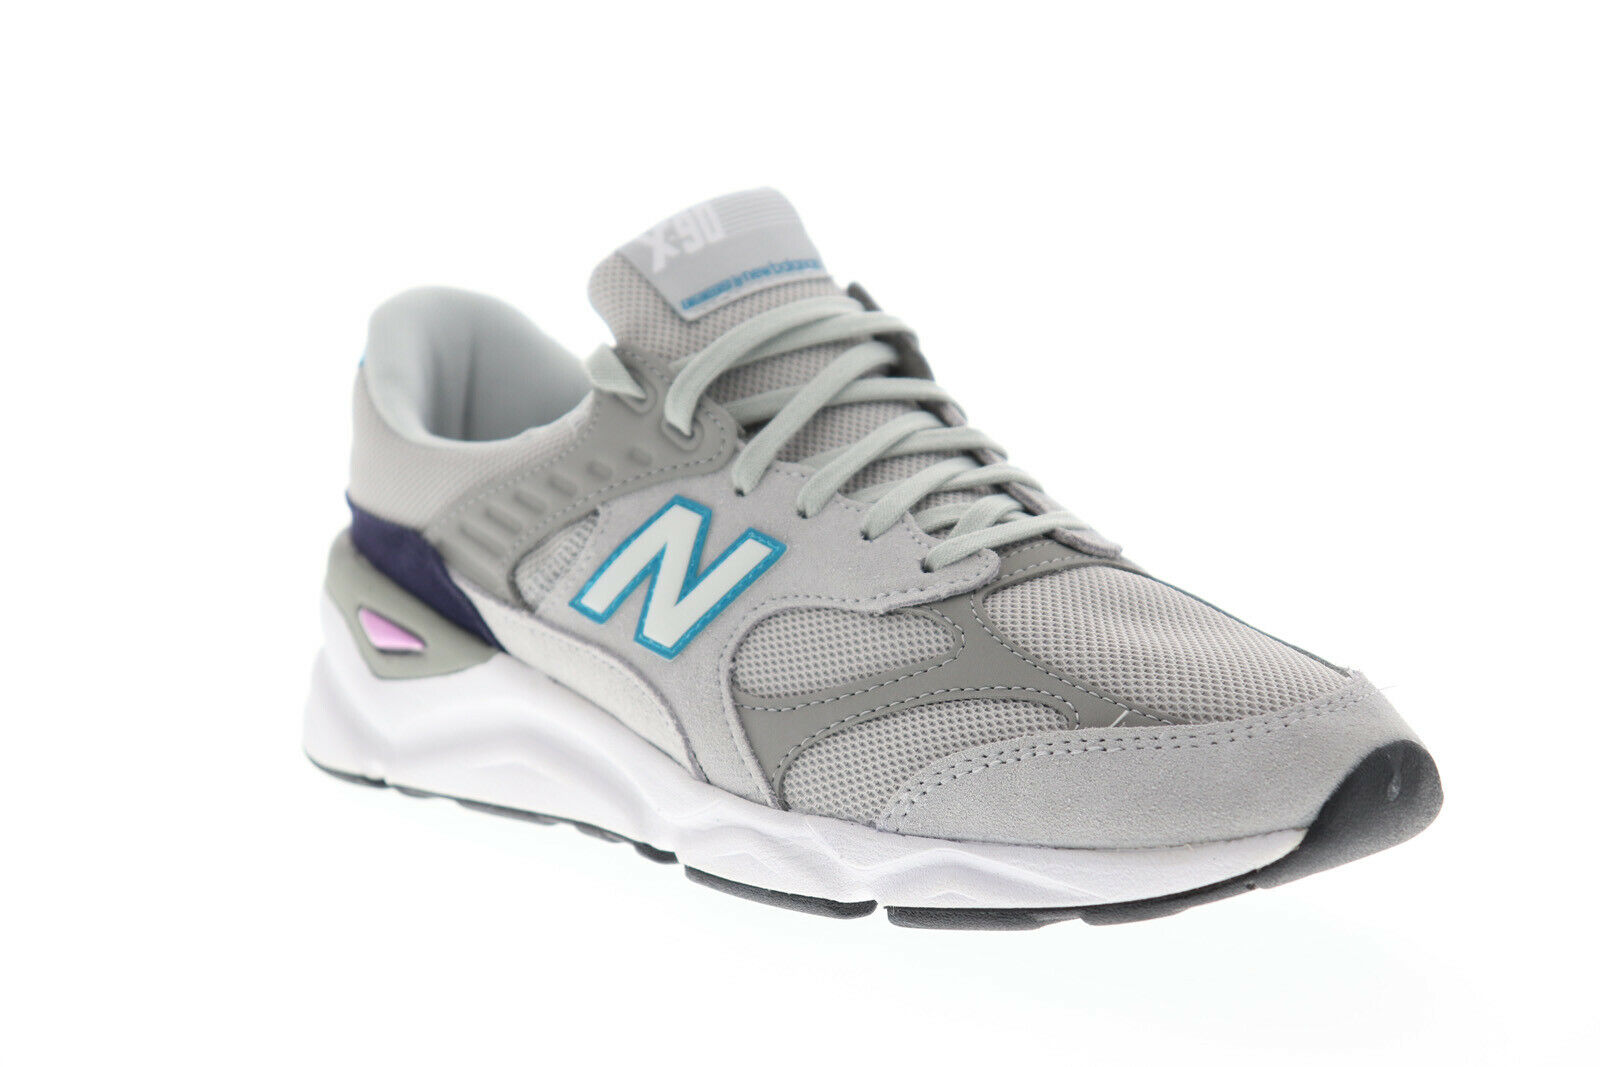 New Balance X 90 MSX90RCE Mens Gray Mesh Suede Casual Low Top Sneakers Shoes